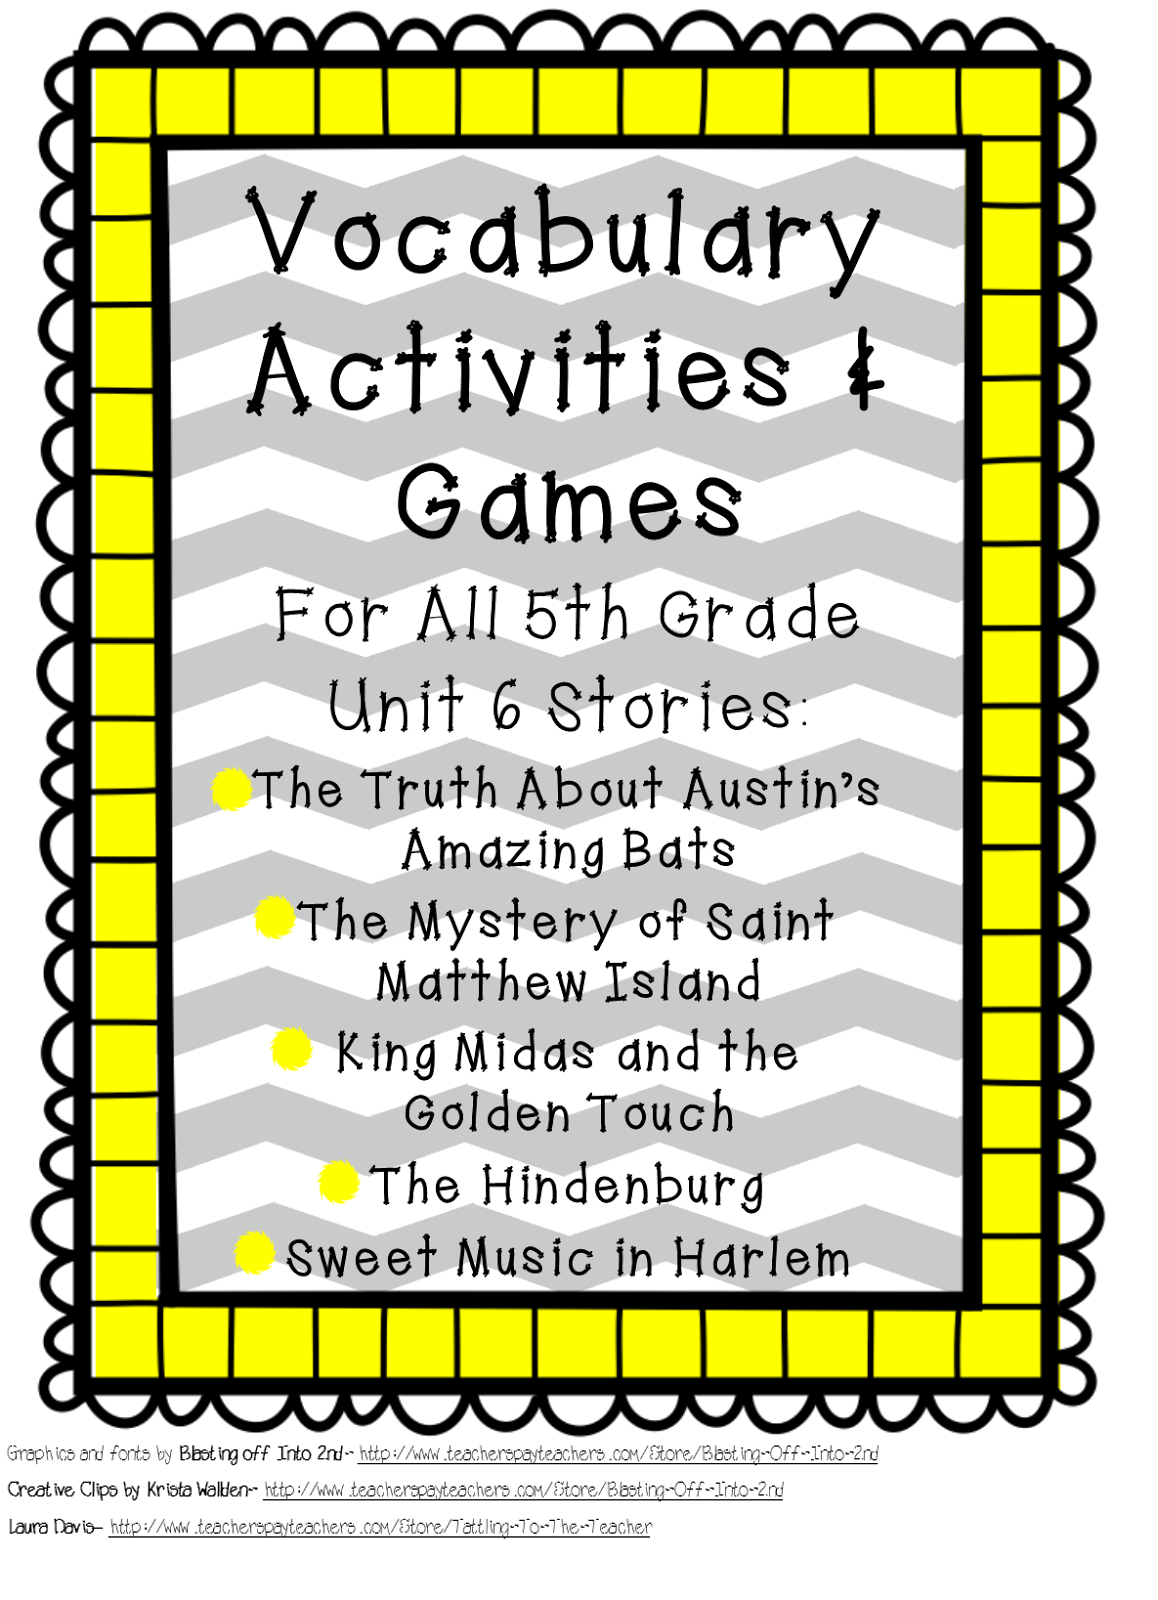 Canny image with 5th grade reading games printable